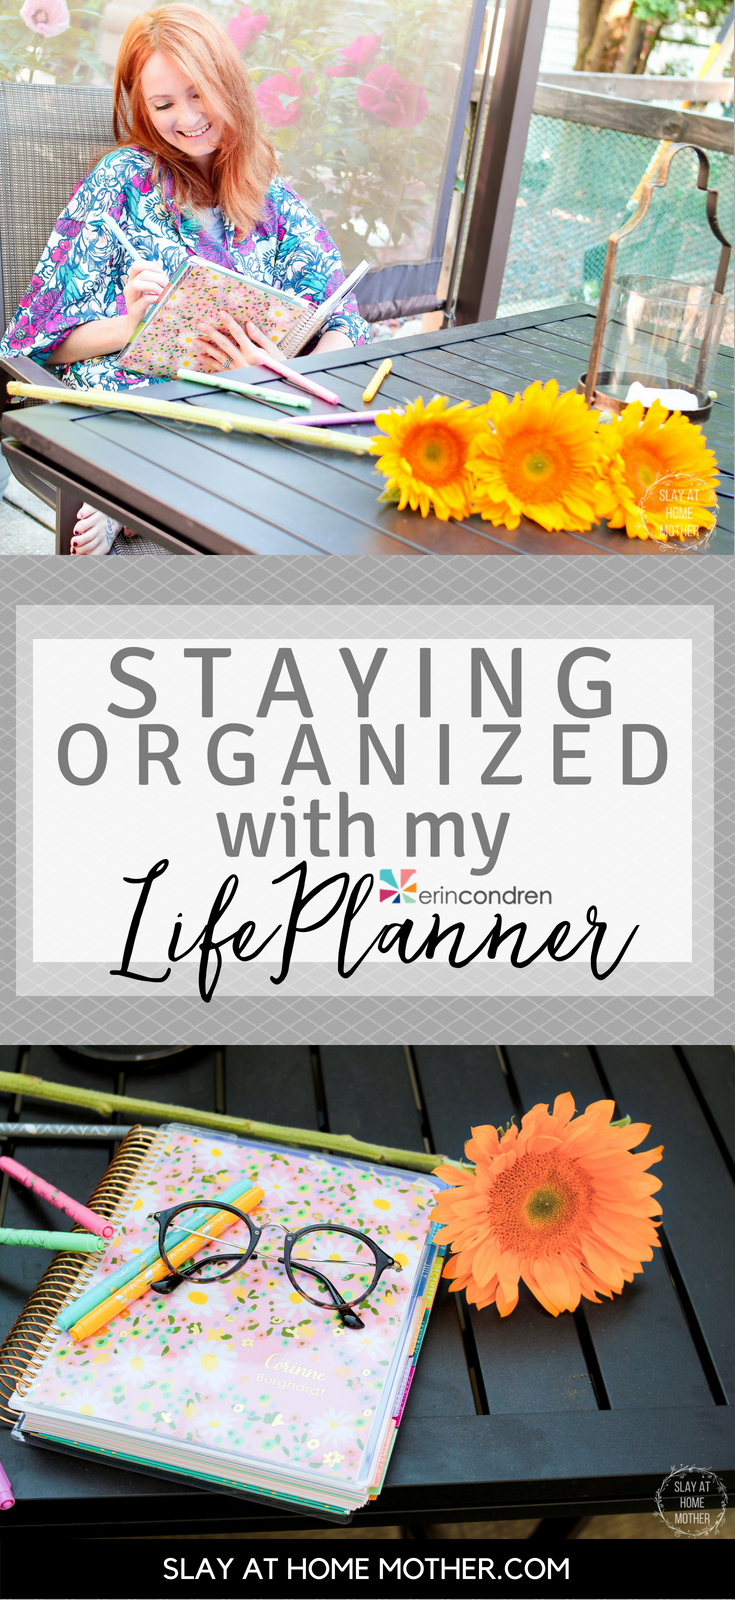 Staying Organized With My Erin Condren LifePlanner #lifeplanner #planner #erincondren #slayathomemother - SlayAtHomeMother.com